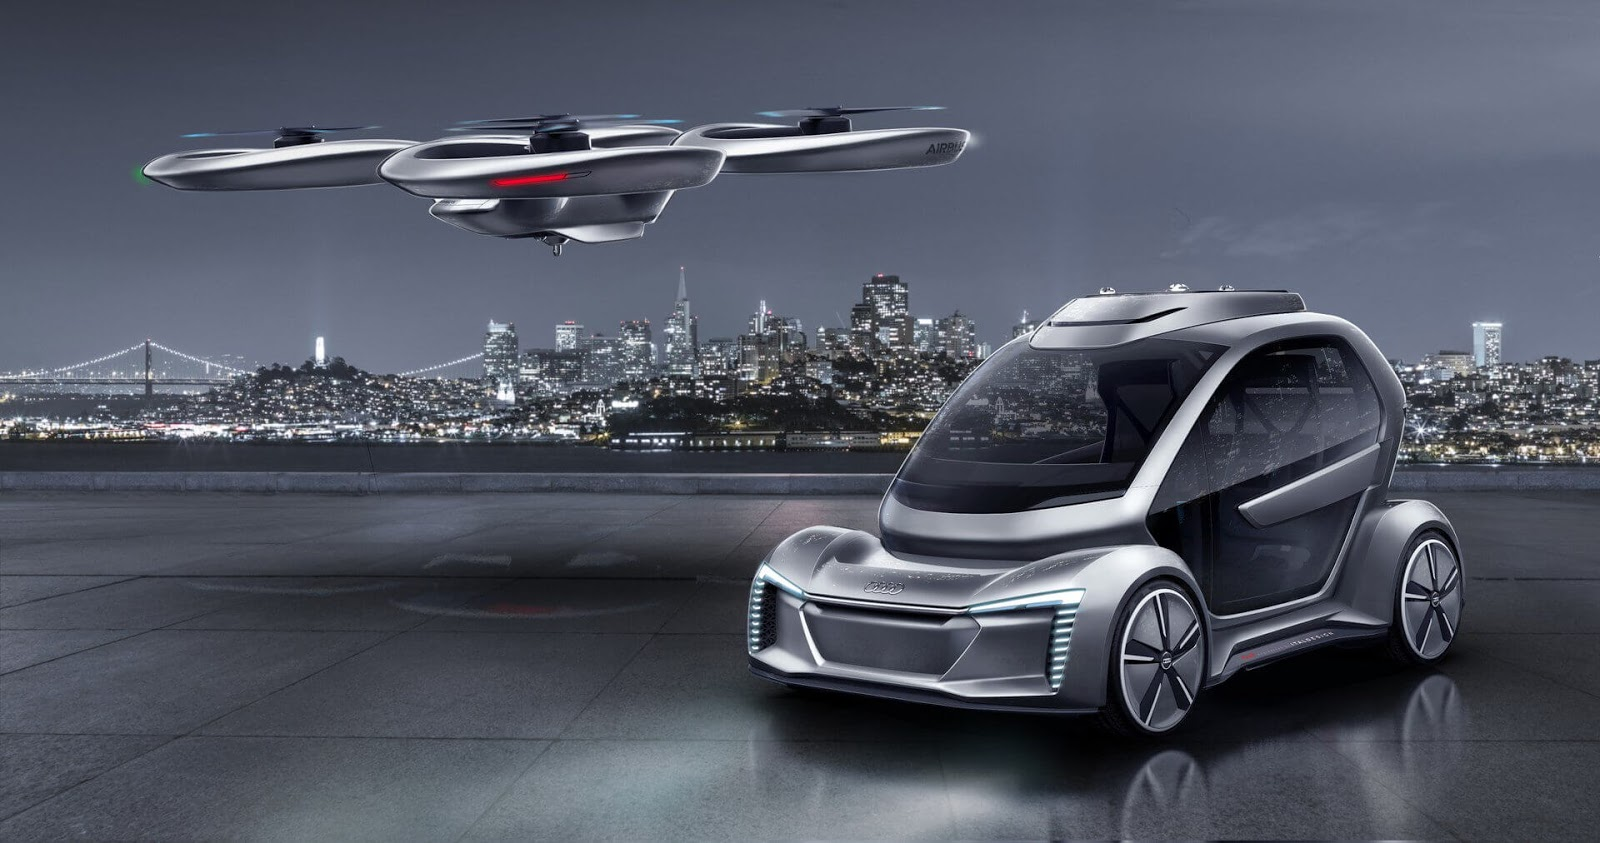 Germany going forward with Airbus and Audi's Flying Car Taxi concept